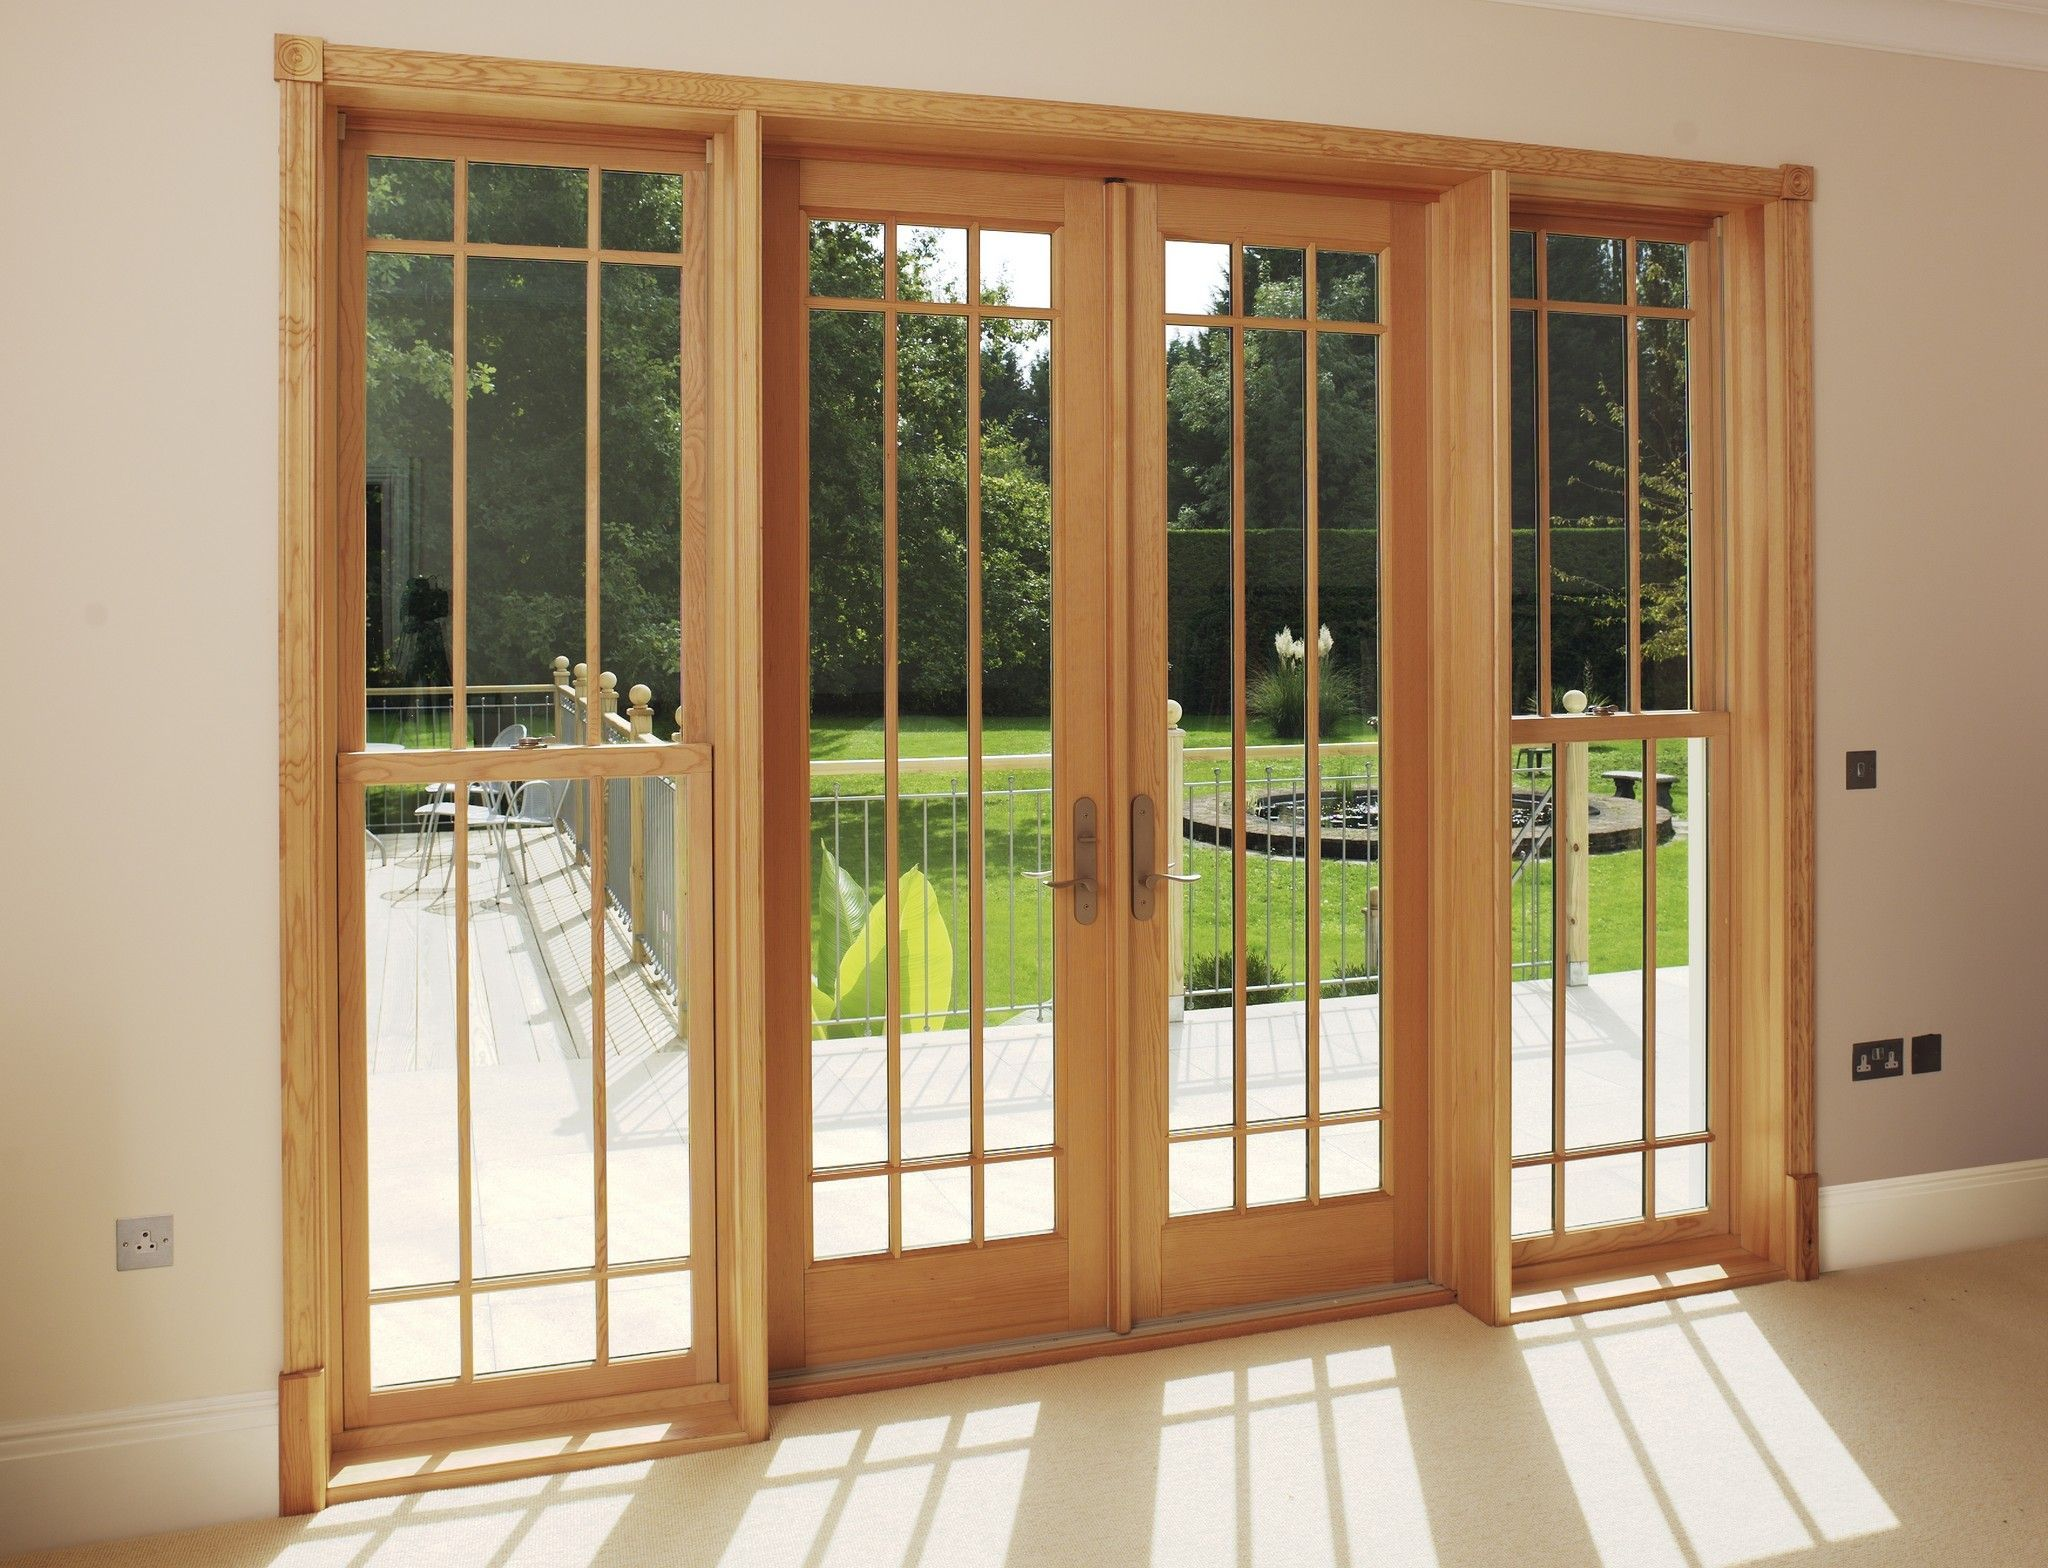 Marvin S Ultimate Timber French Doors Are Built To Complement Any French Doors Wood French Doors Wooden French Doors